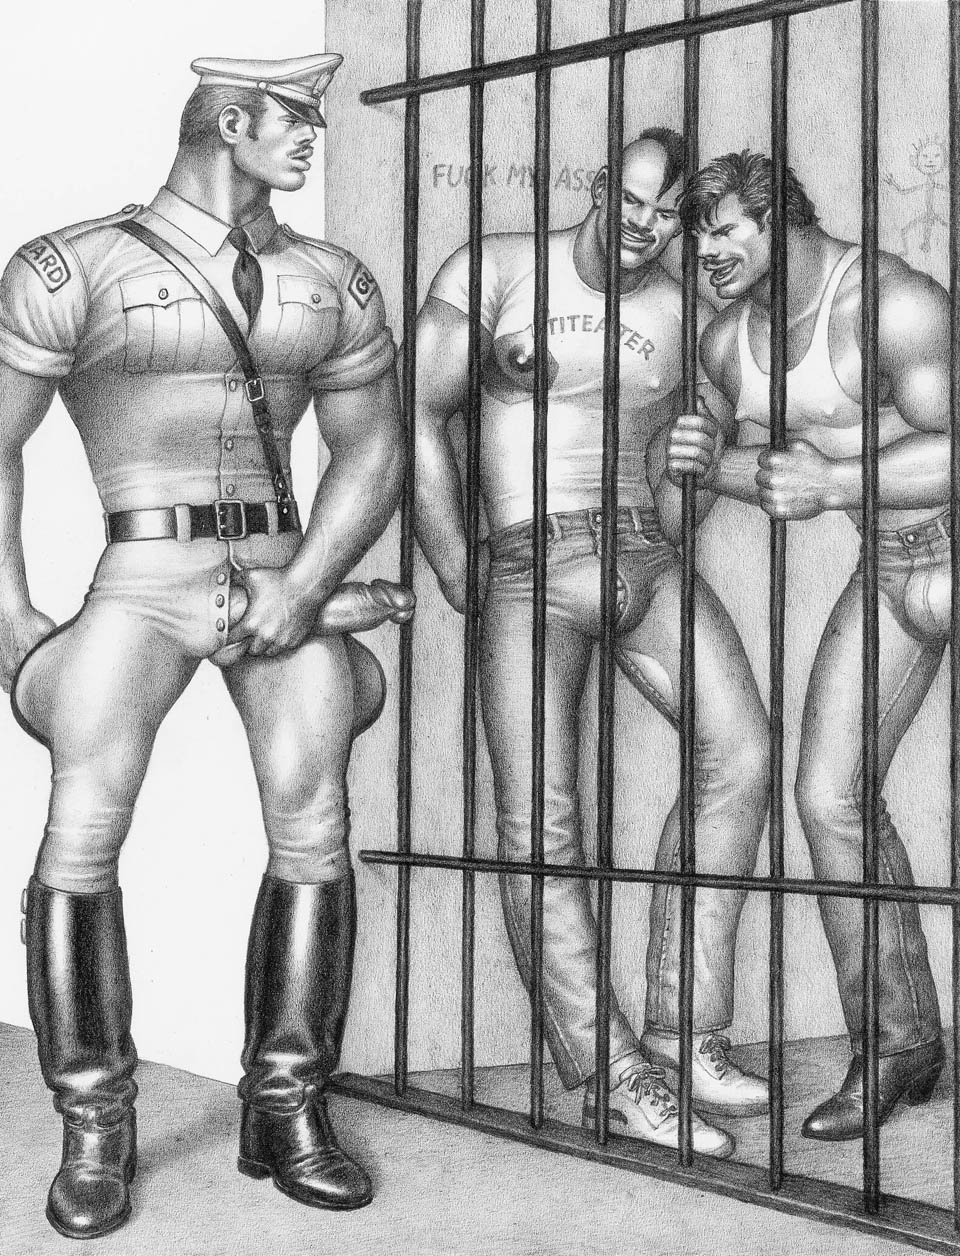 134a_tom_of_finland_cops_robbers_pi_48607_1605021614_id_1051852